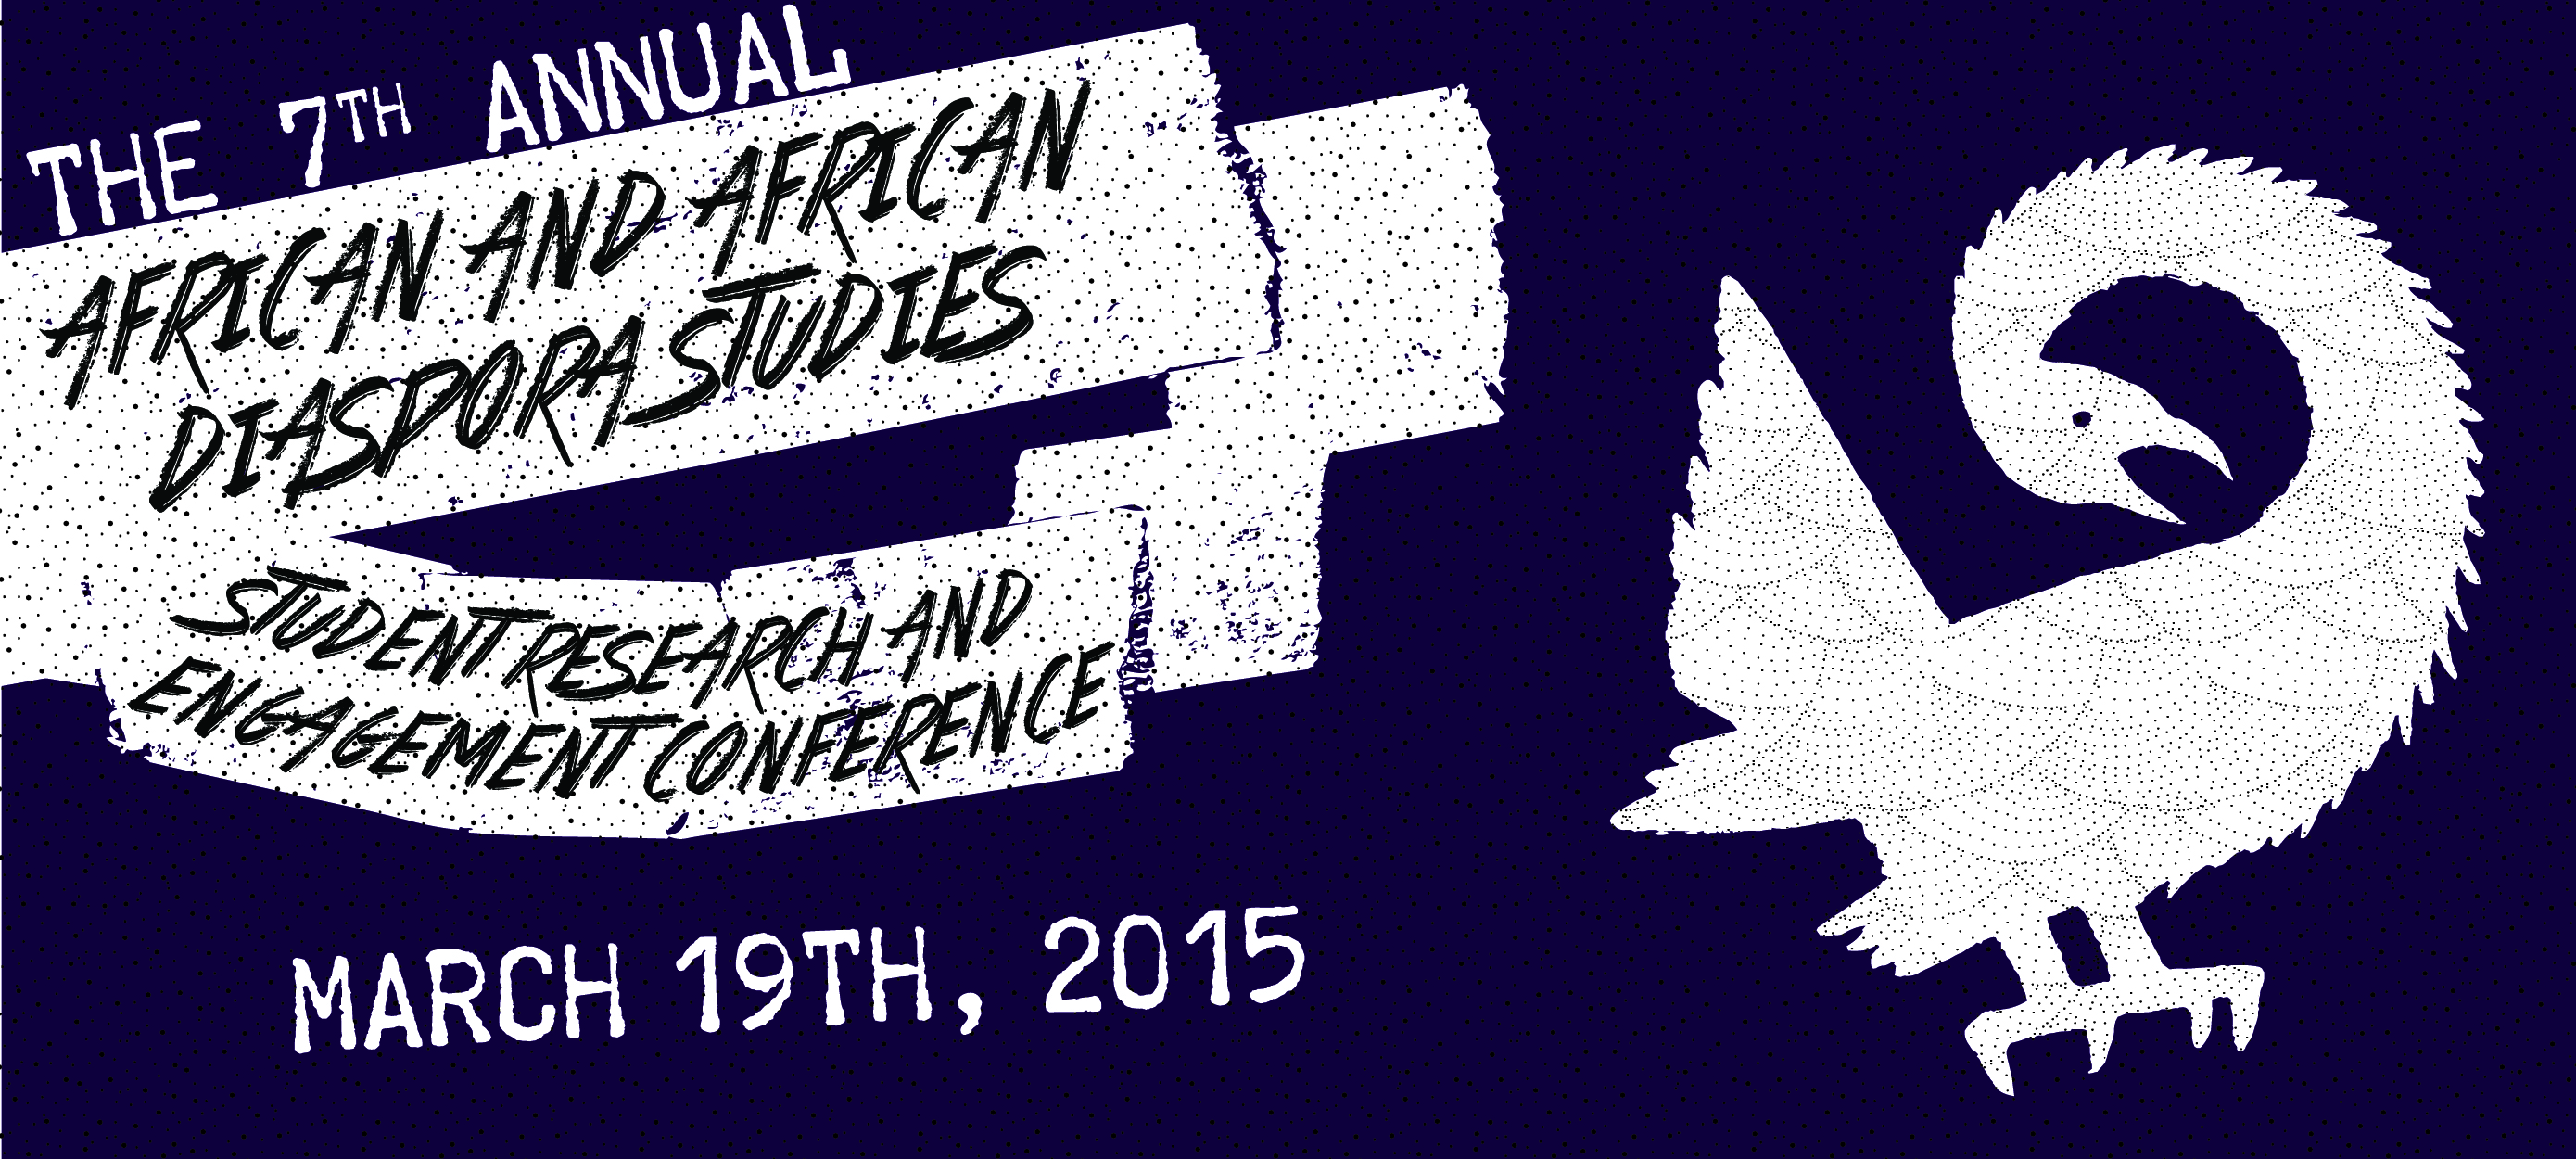 7th Annual African and African Diaspora Studies Student Research and Engagement Conference